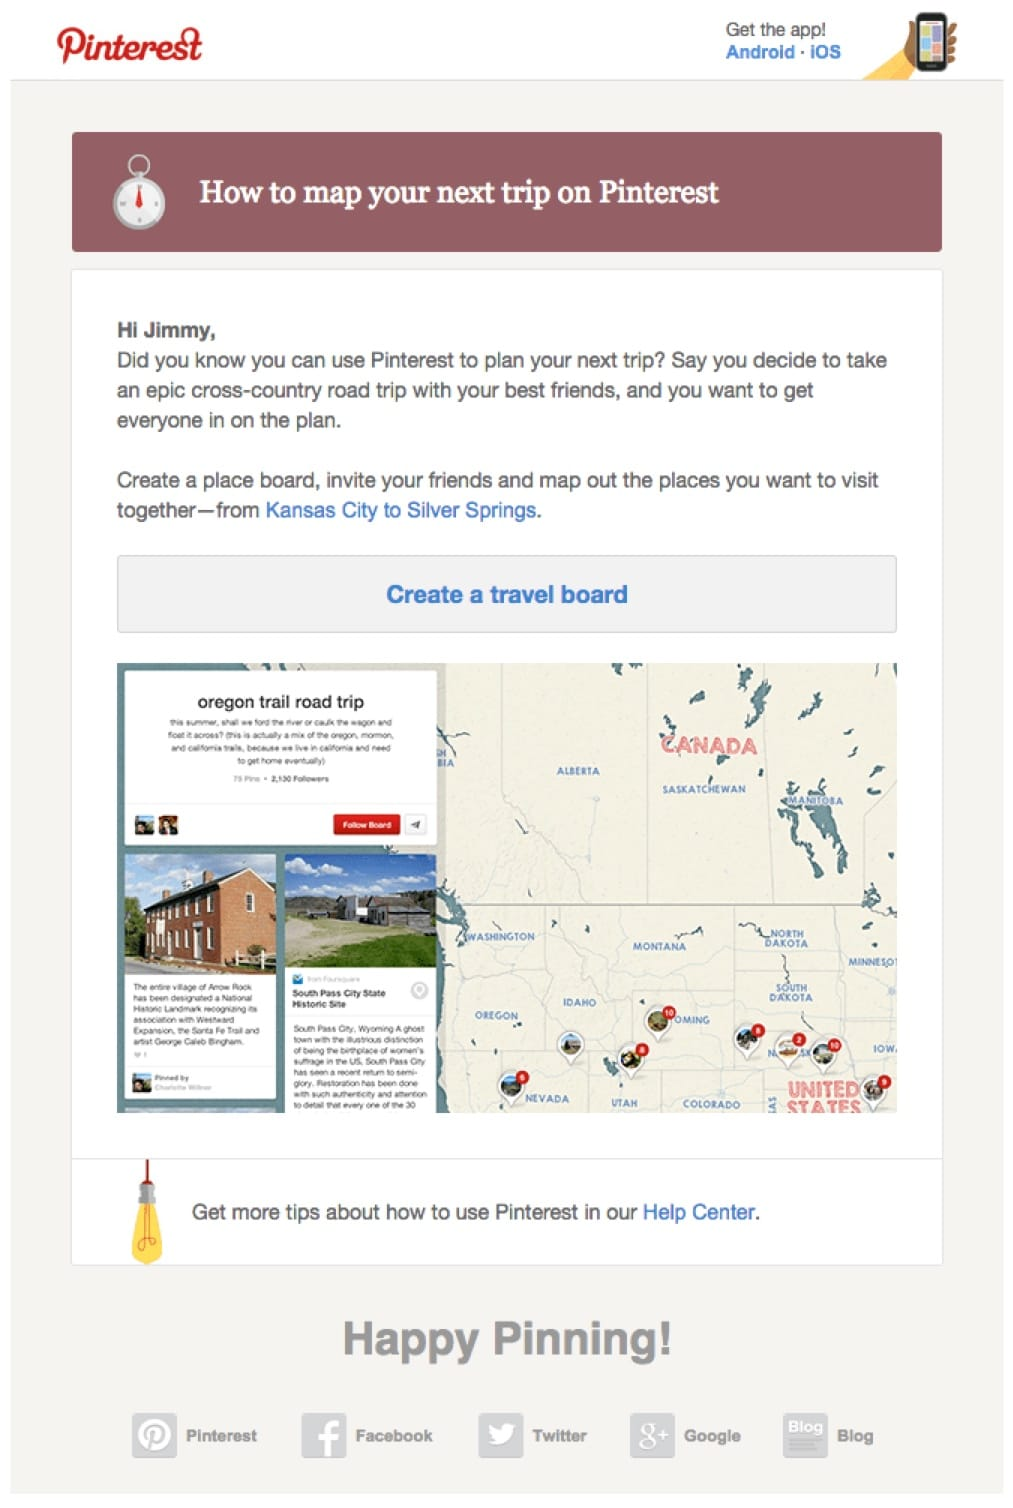 promotional email example pinterest (did you know email)